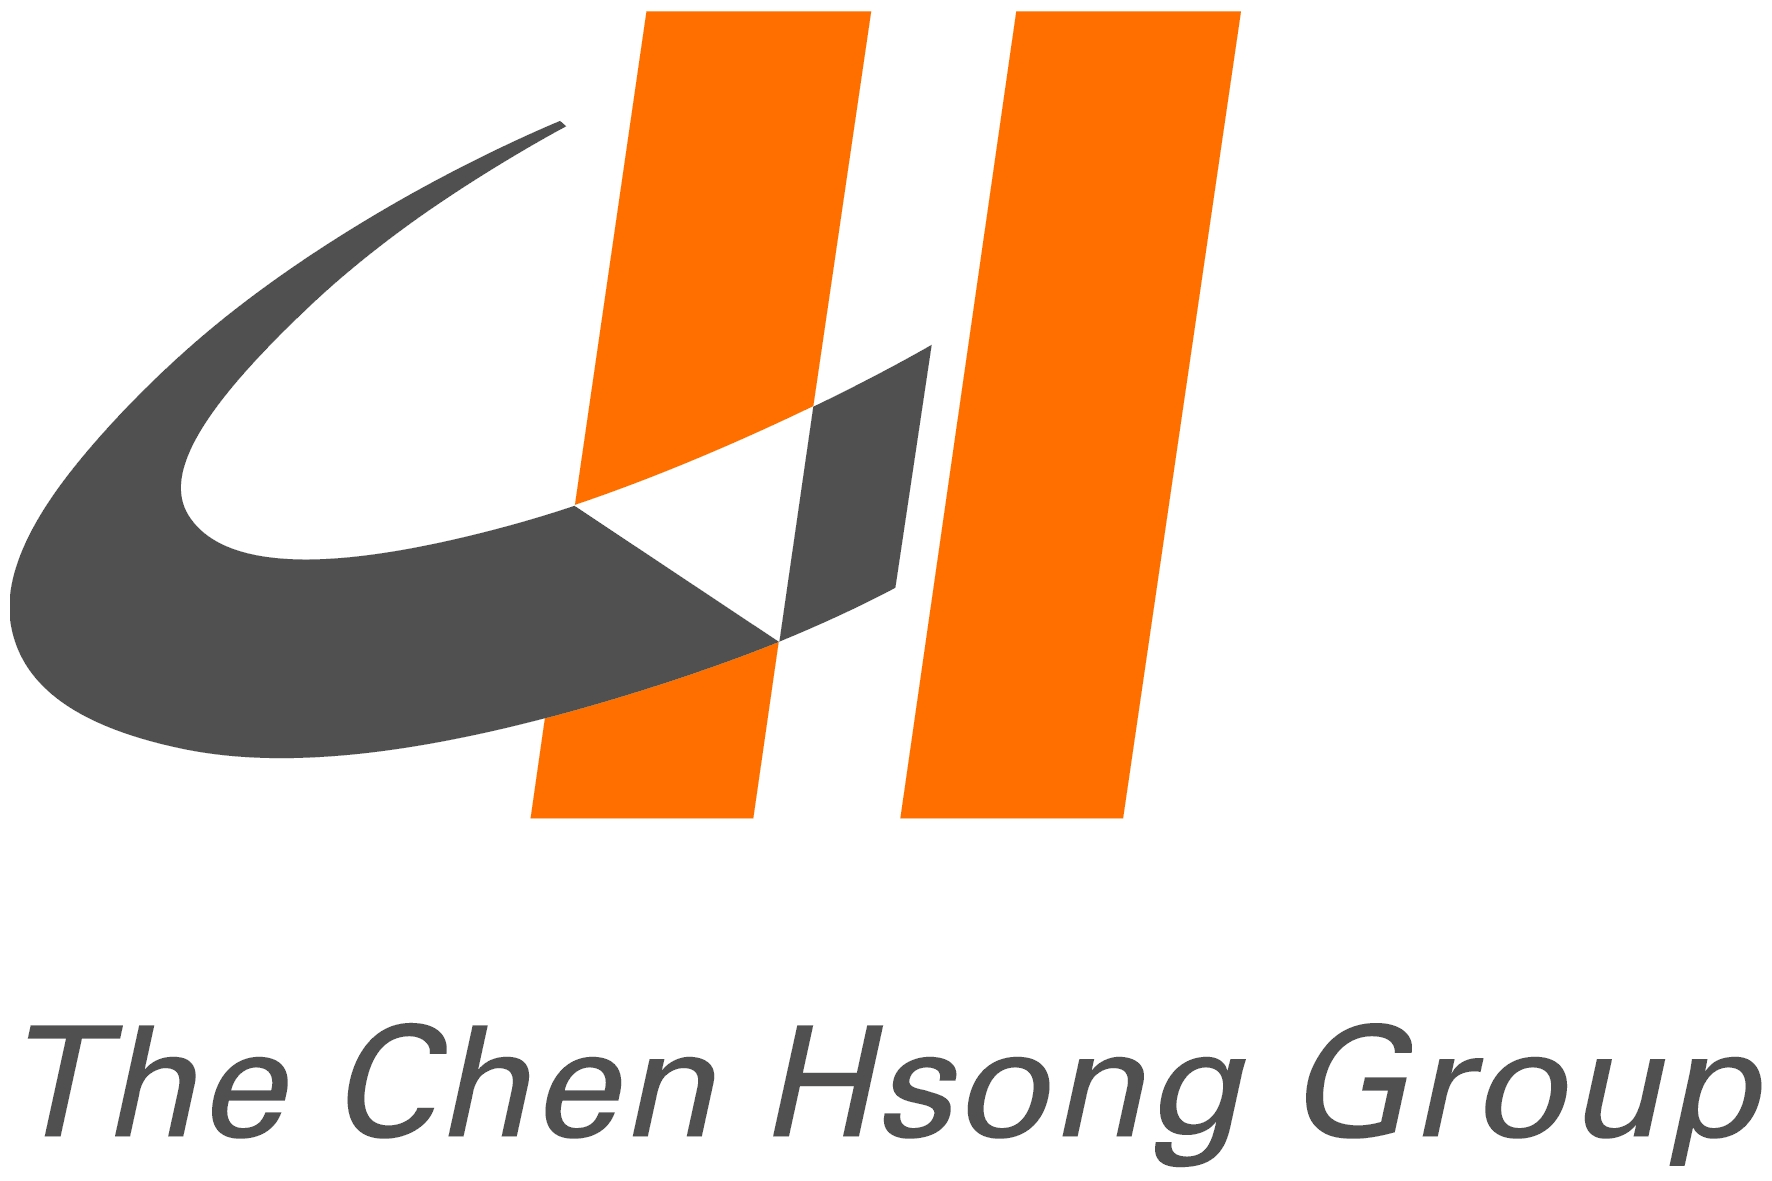 Chen Hsong Group